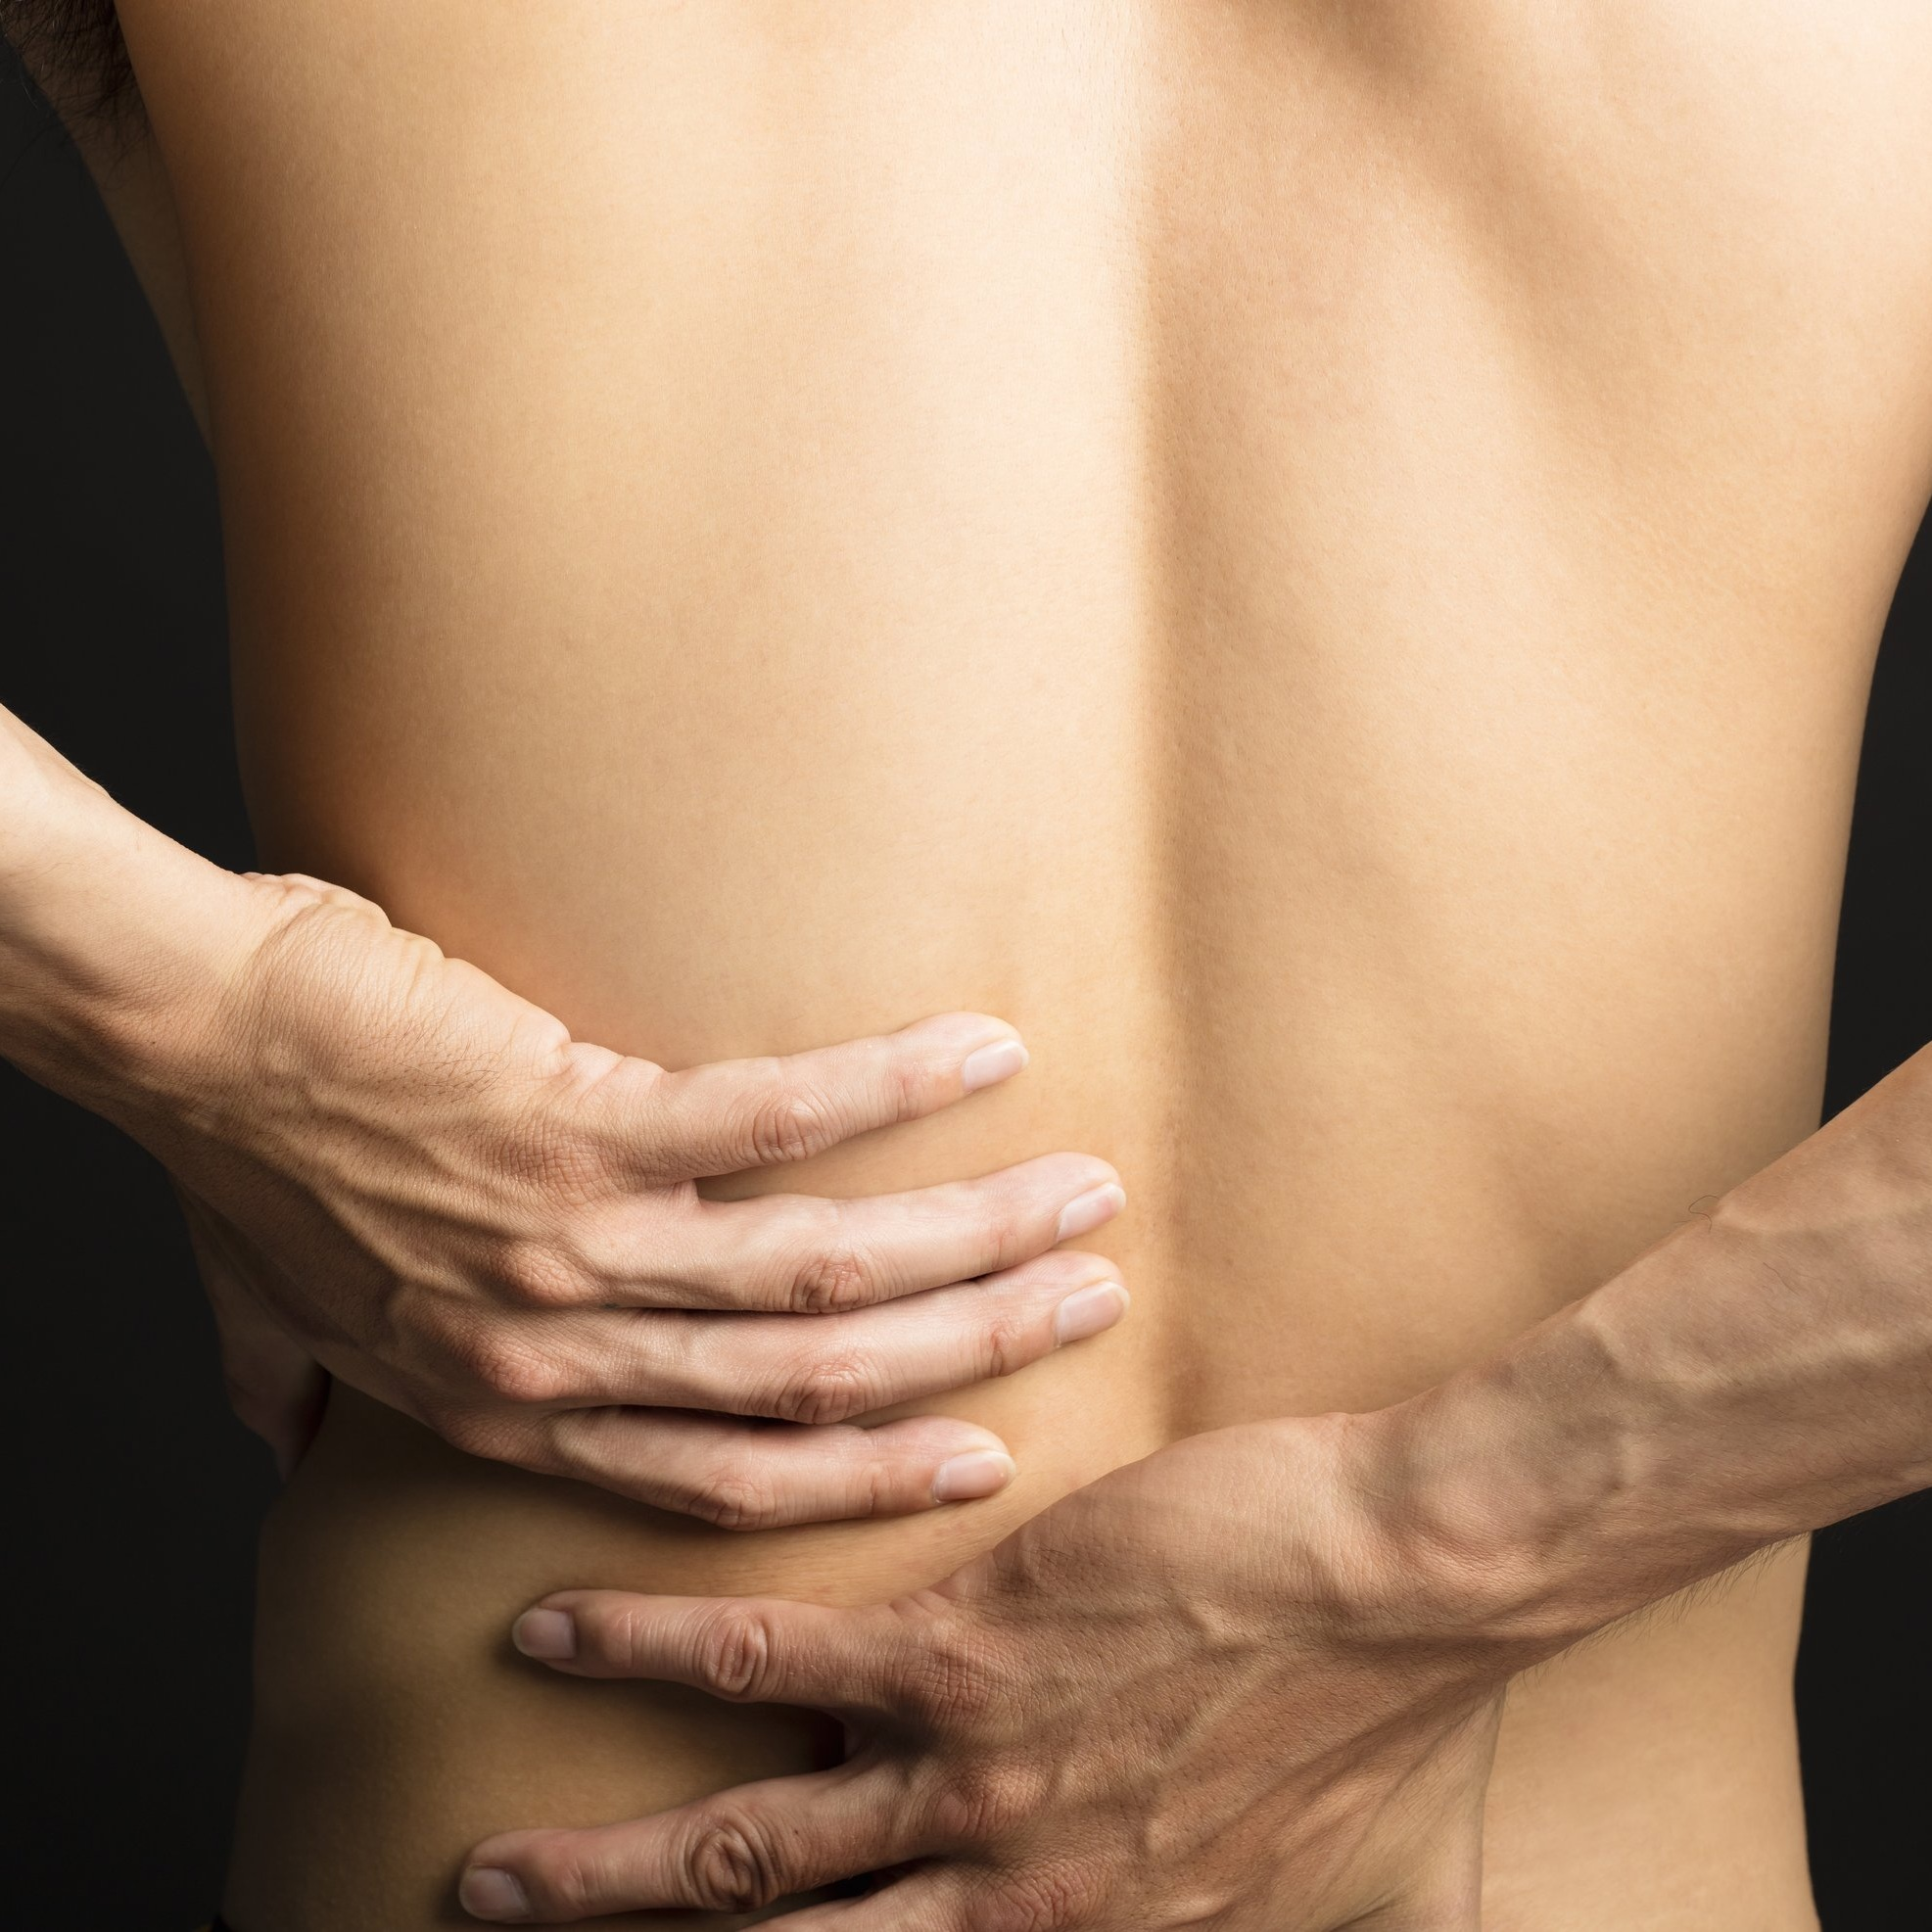 Chiropractic - Diagnosis, management, and prevention